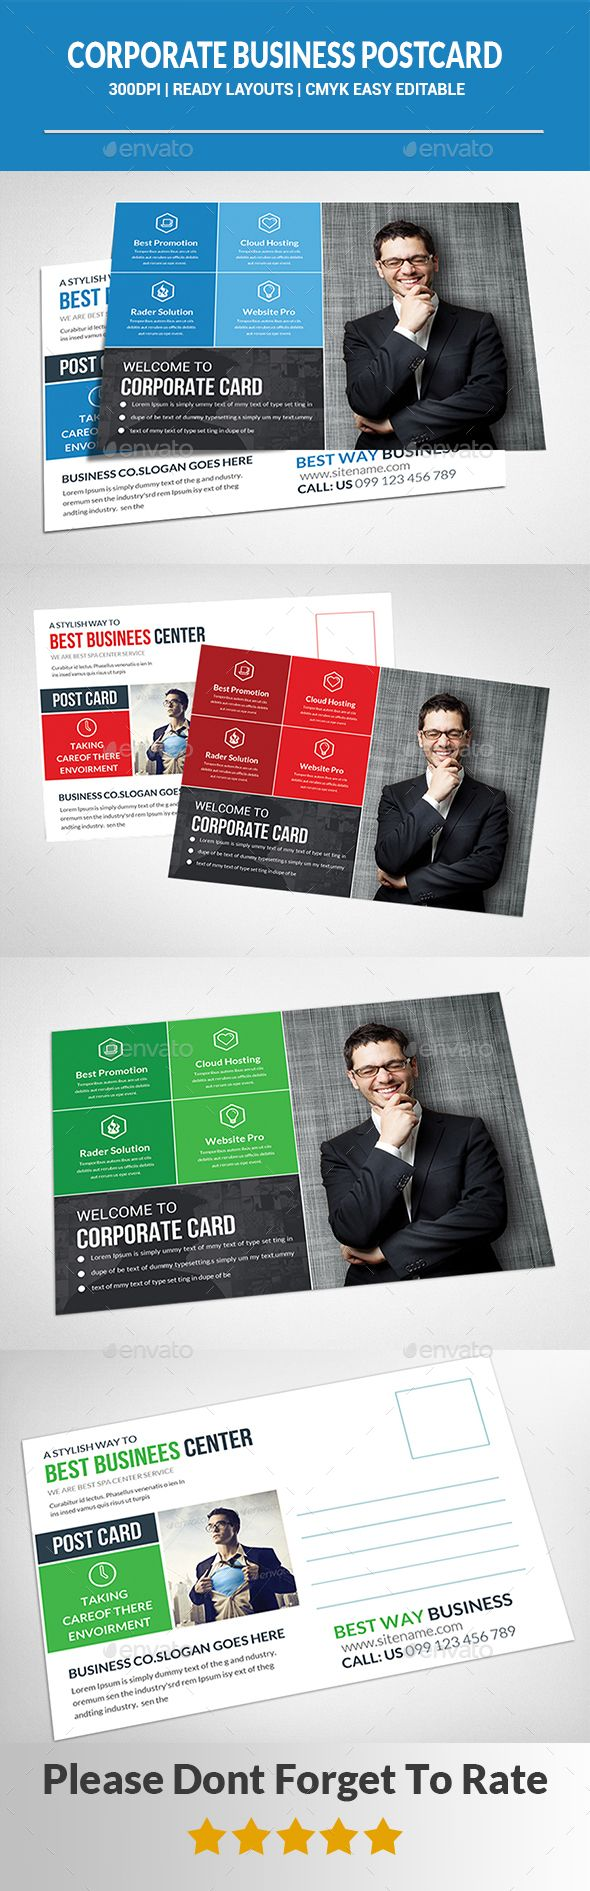 Corporate Business Postcard Template PSD #design Download: http://graphicriver.net/item/corporate-business-postcard-template/14311527?ref=ksioks